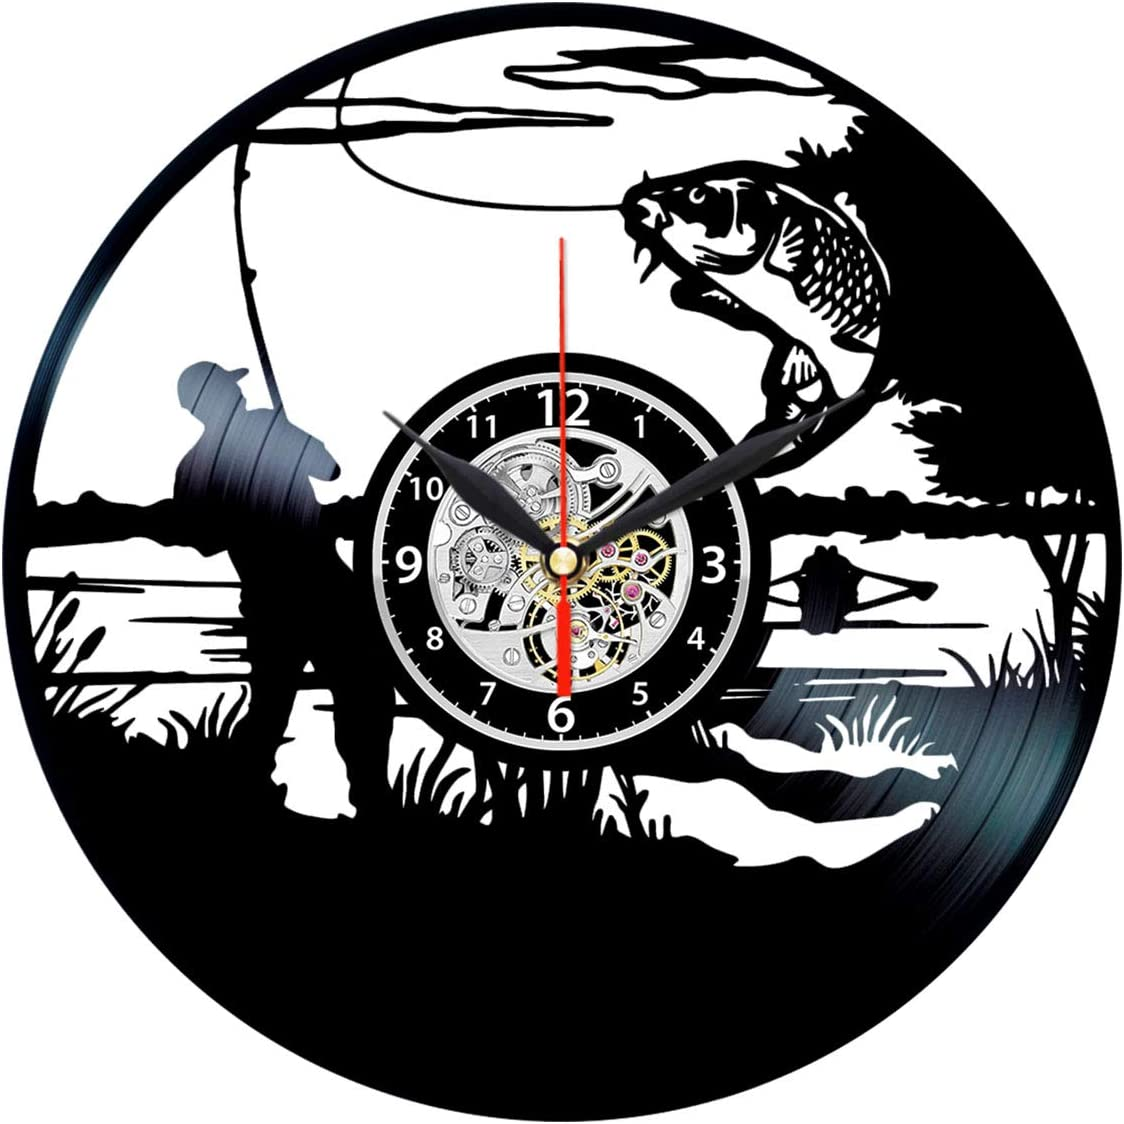 Queen Clocks Bass Fishing Clock - Vinyl Record Art - Fish Wall Decor - Fly Fisherman Gifts